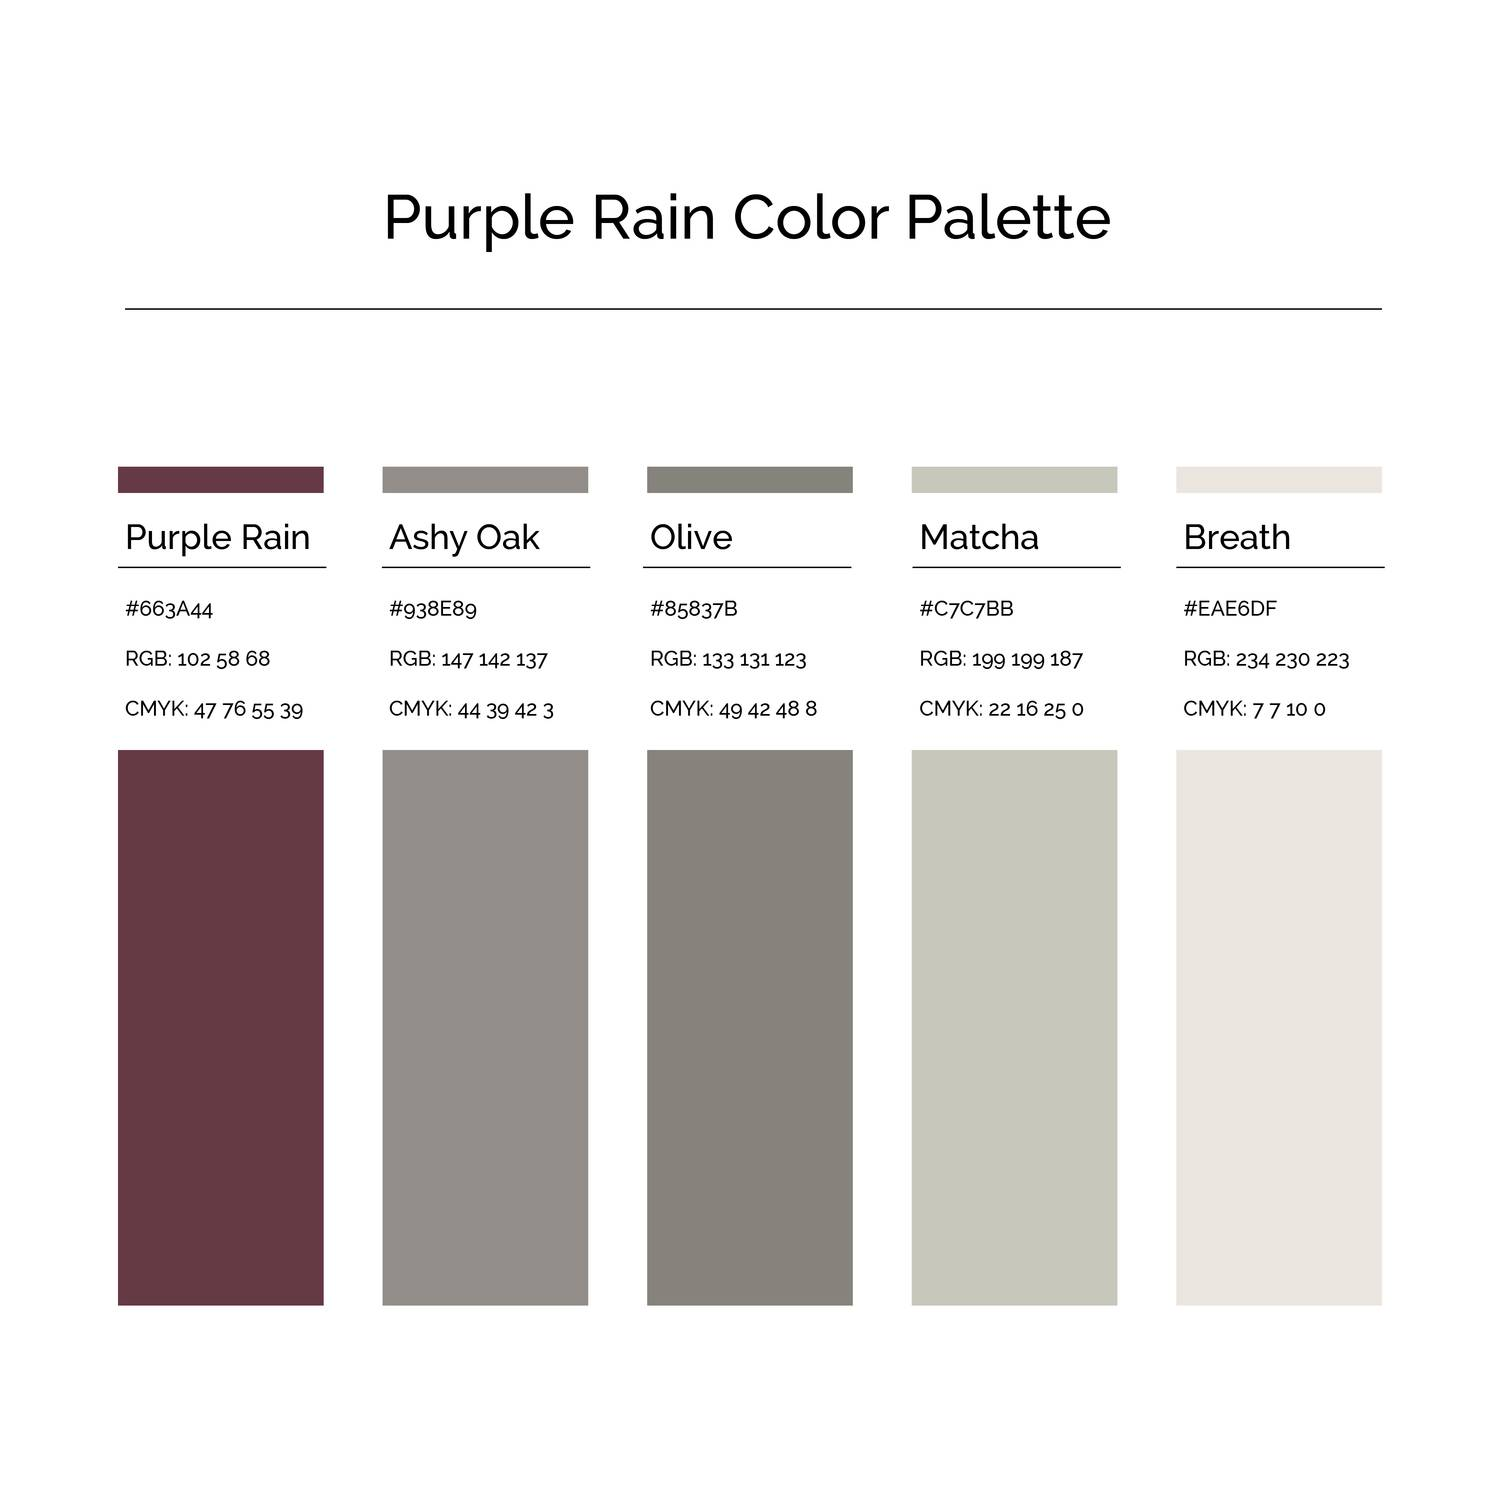 Monochromatic Color Scheme Luxury 15 More Minimalist Color Palettes to Jump Start Your